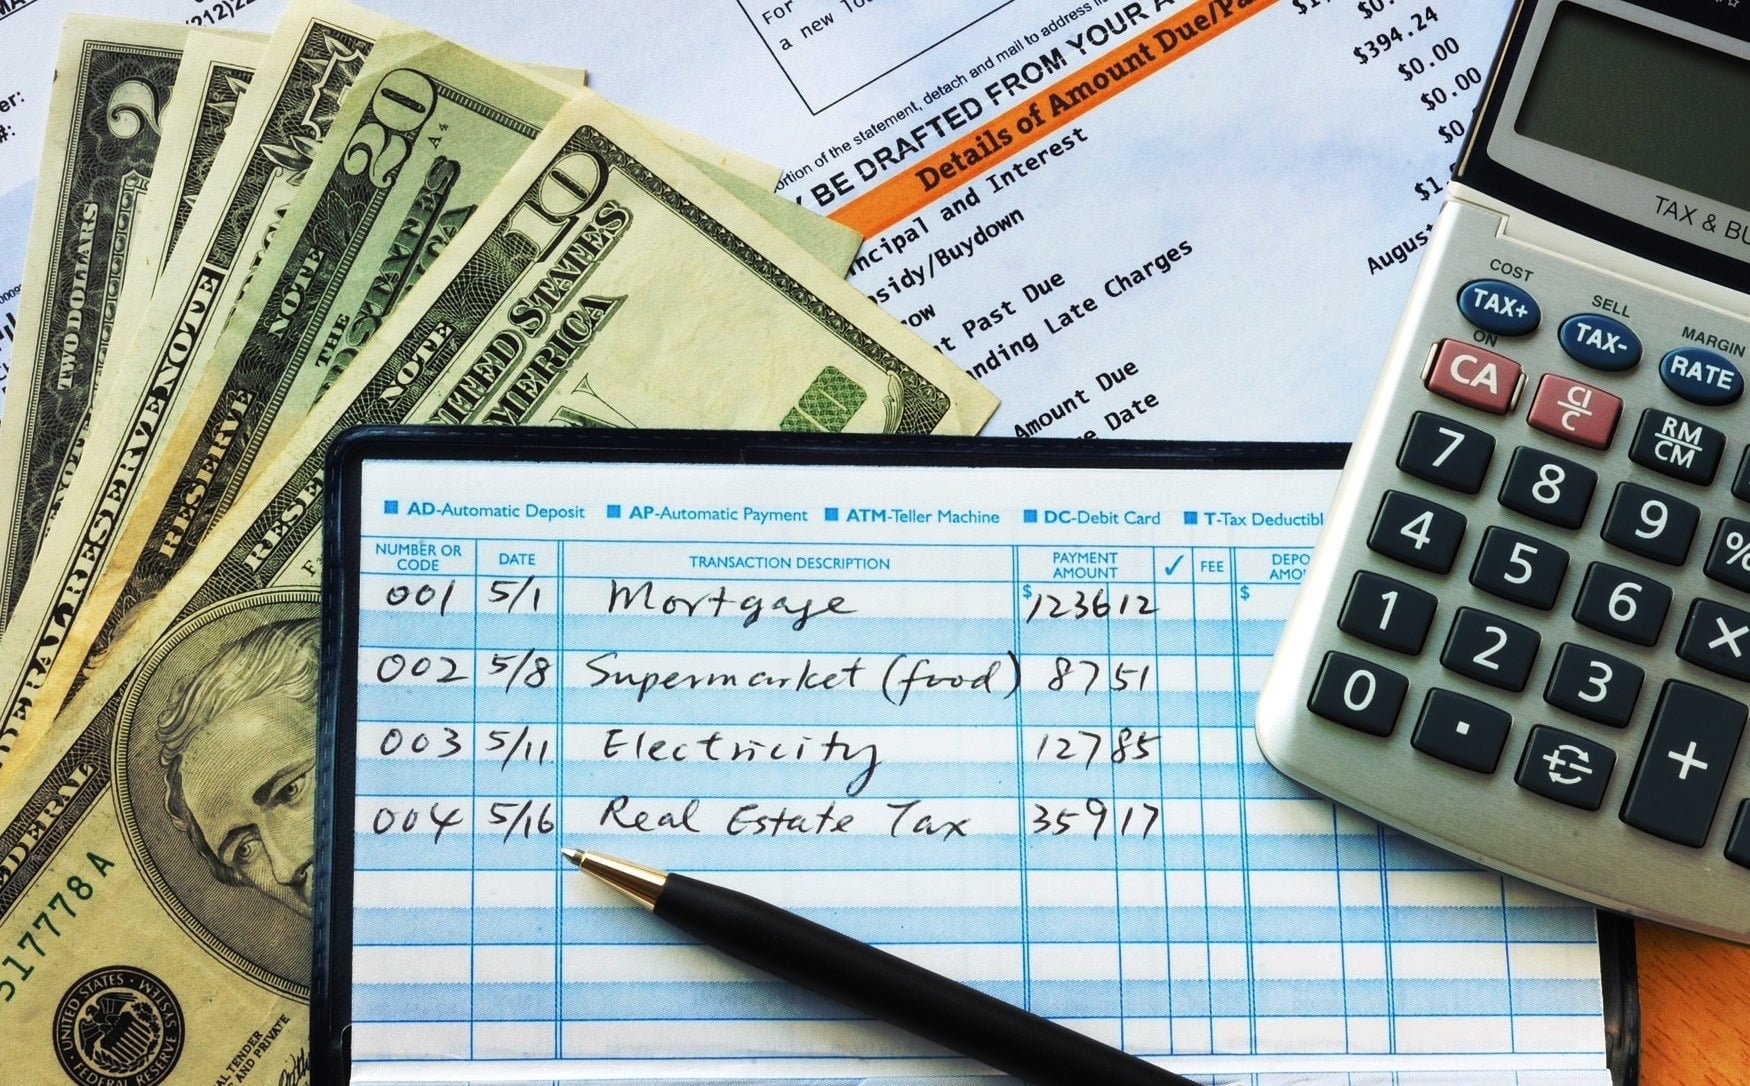 The Difference between Revaluation and Realization Account - ilearnlot